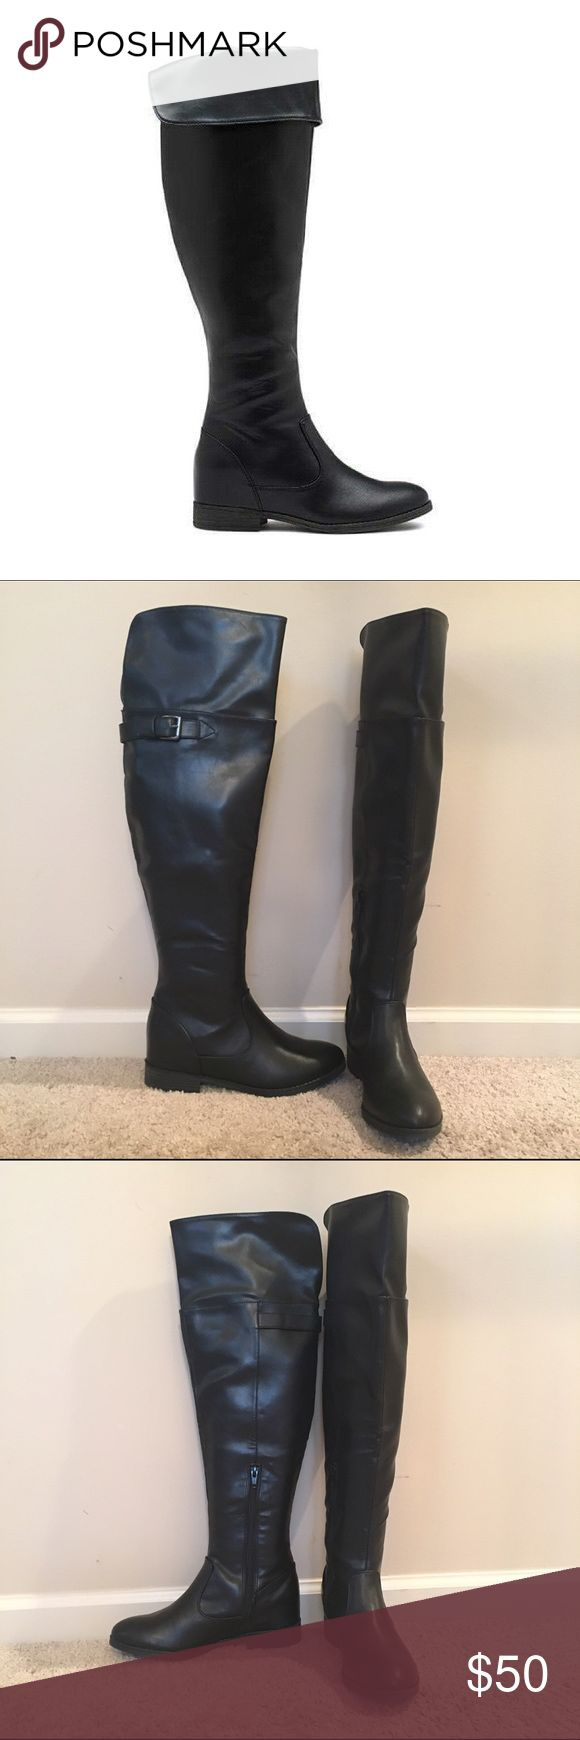 Black Over The Knee Boots Brand new in box. Can be folded or unfolded. With 1-inch heel. No flaws, just too tall for me since i'm 5' tall. Bass Shoes Over the Knee Boots